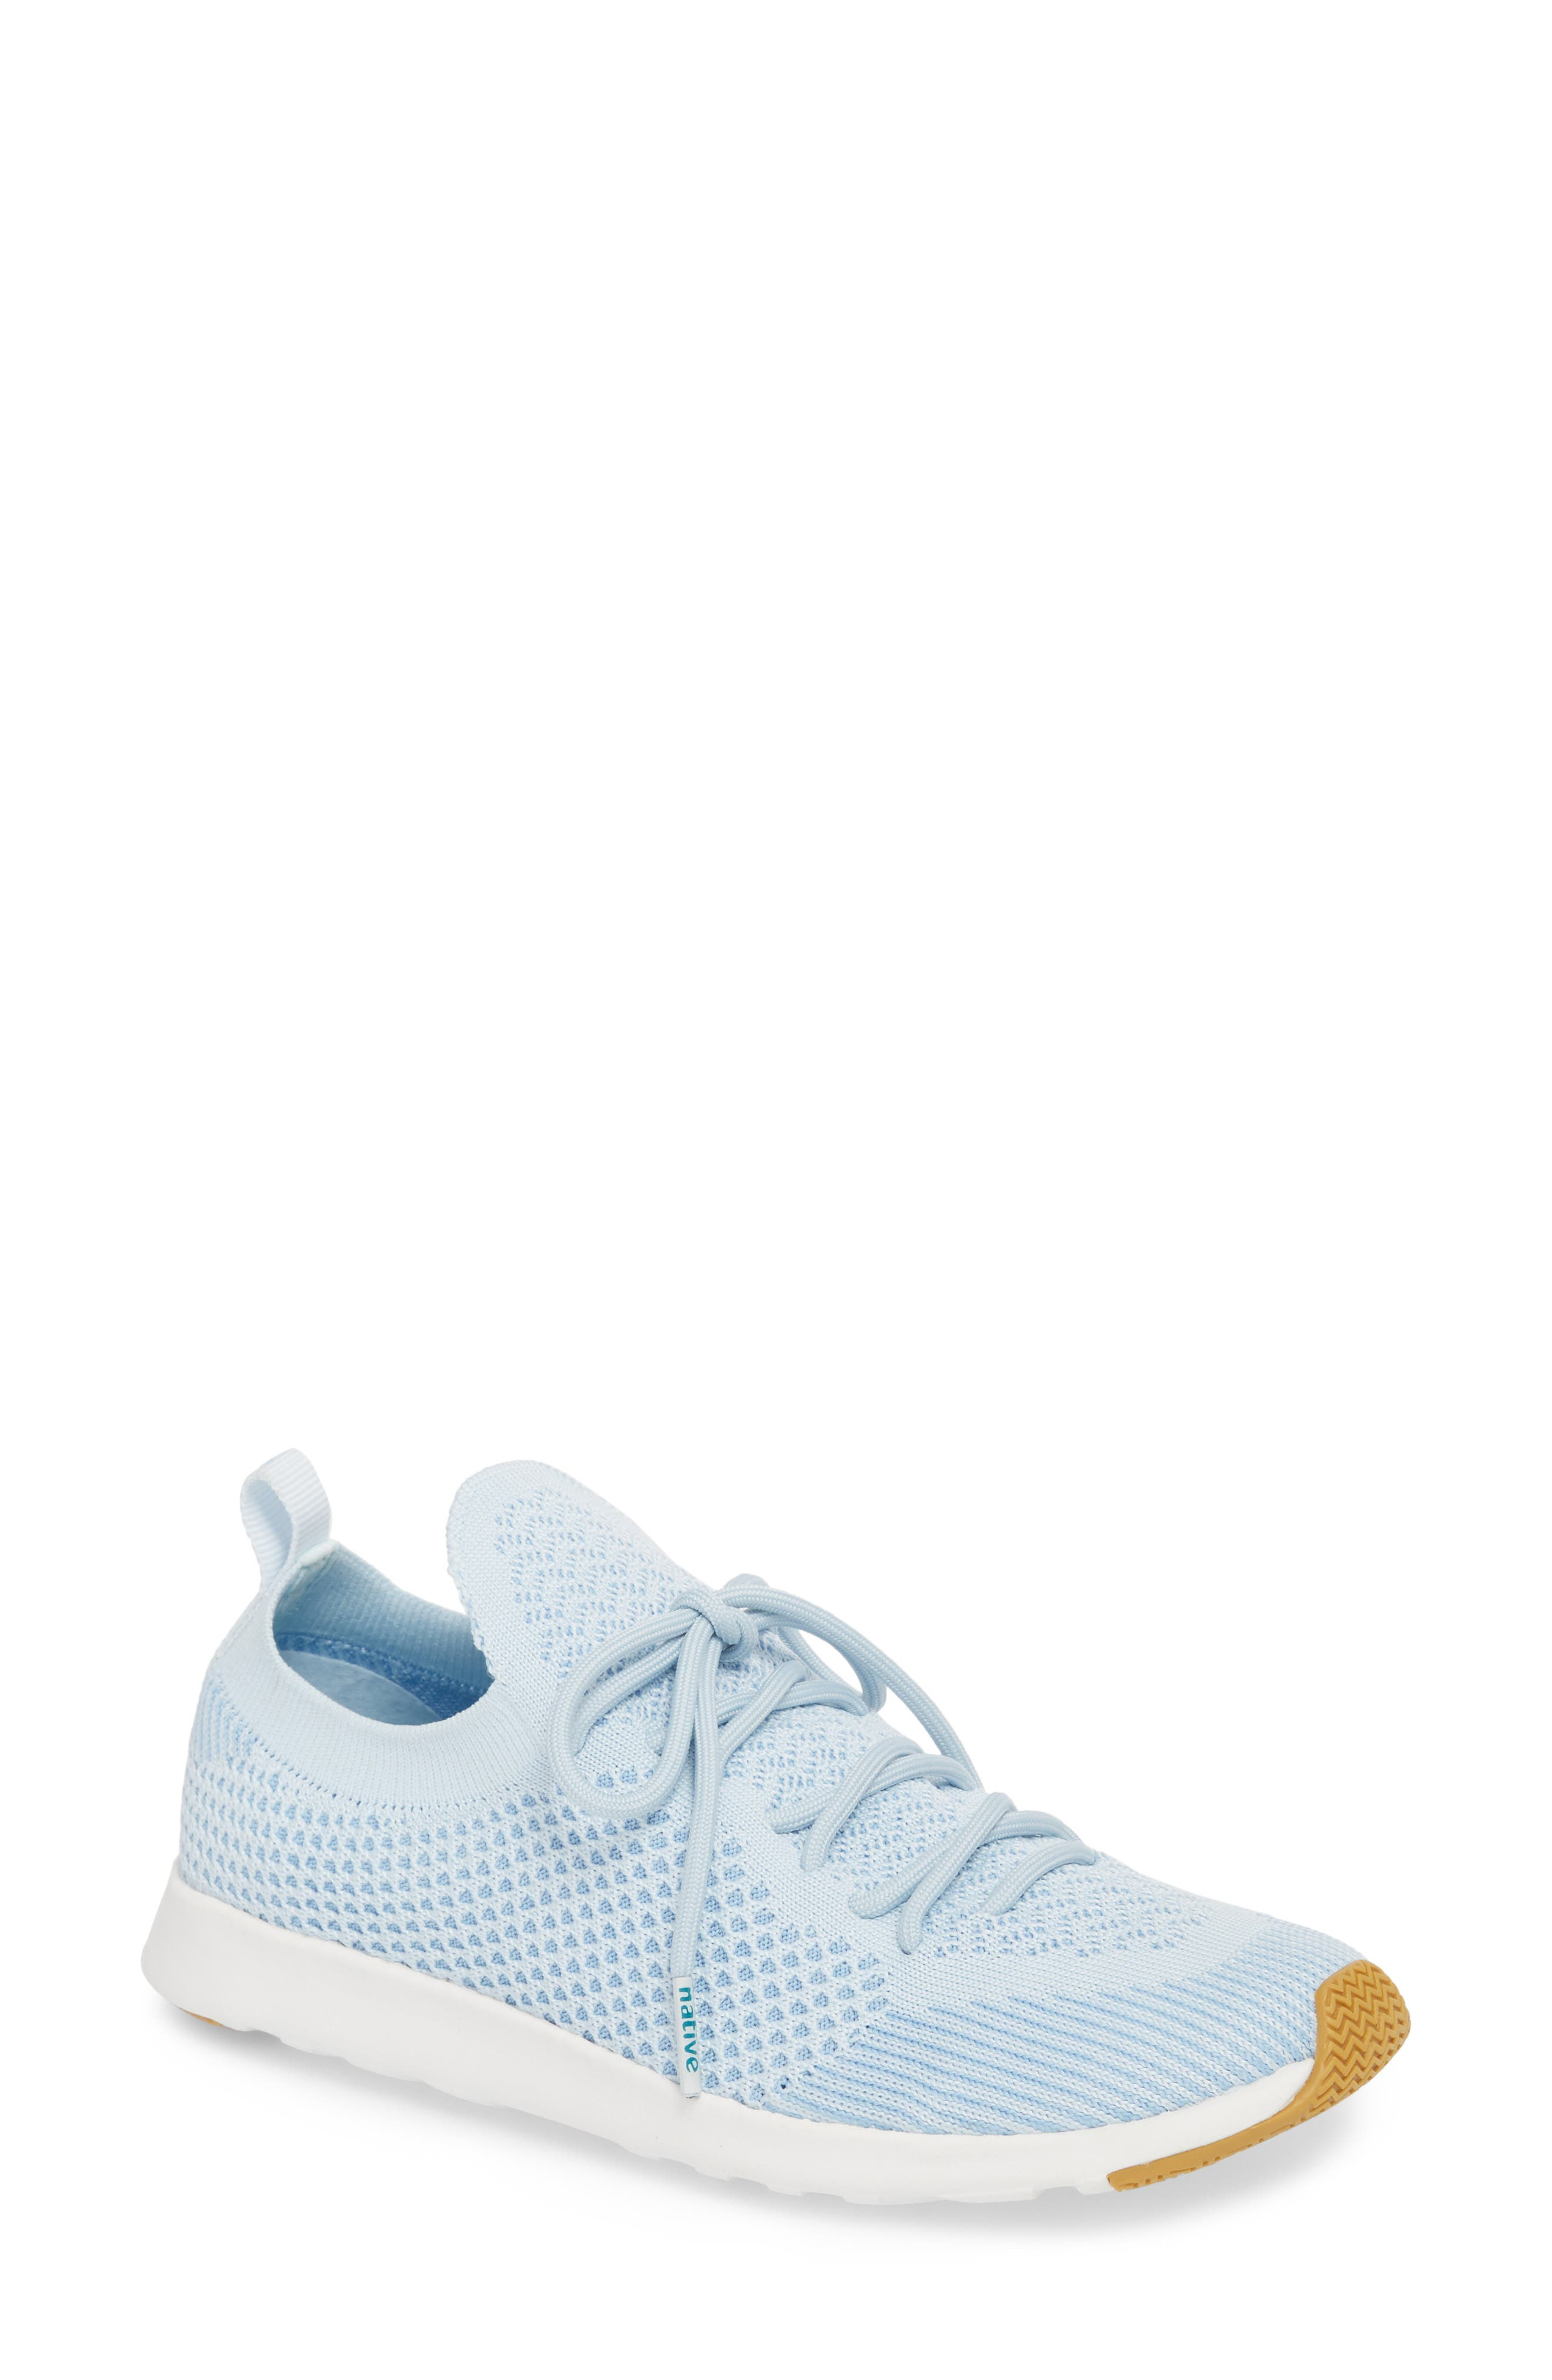 AP Mercury Liteknit Sneaker,                         Main,                         color, AIR BLUE/ SHELL WHITE/ NATURAL